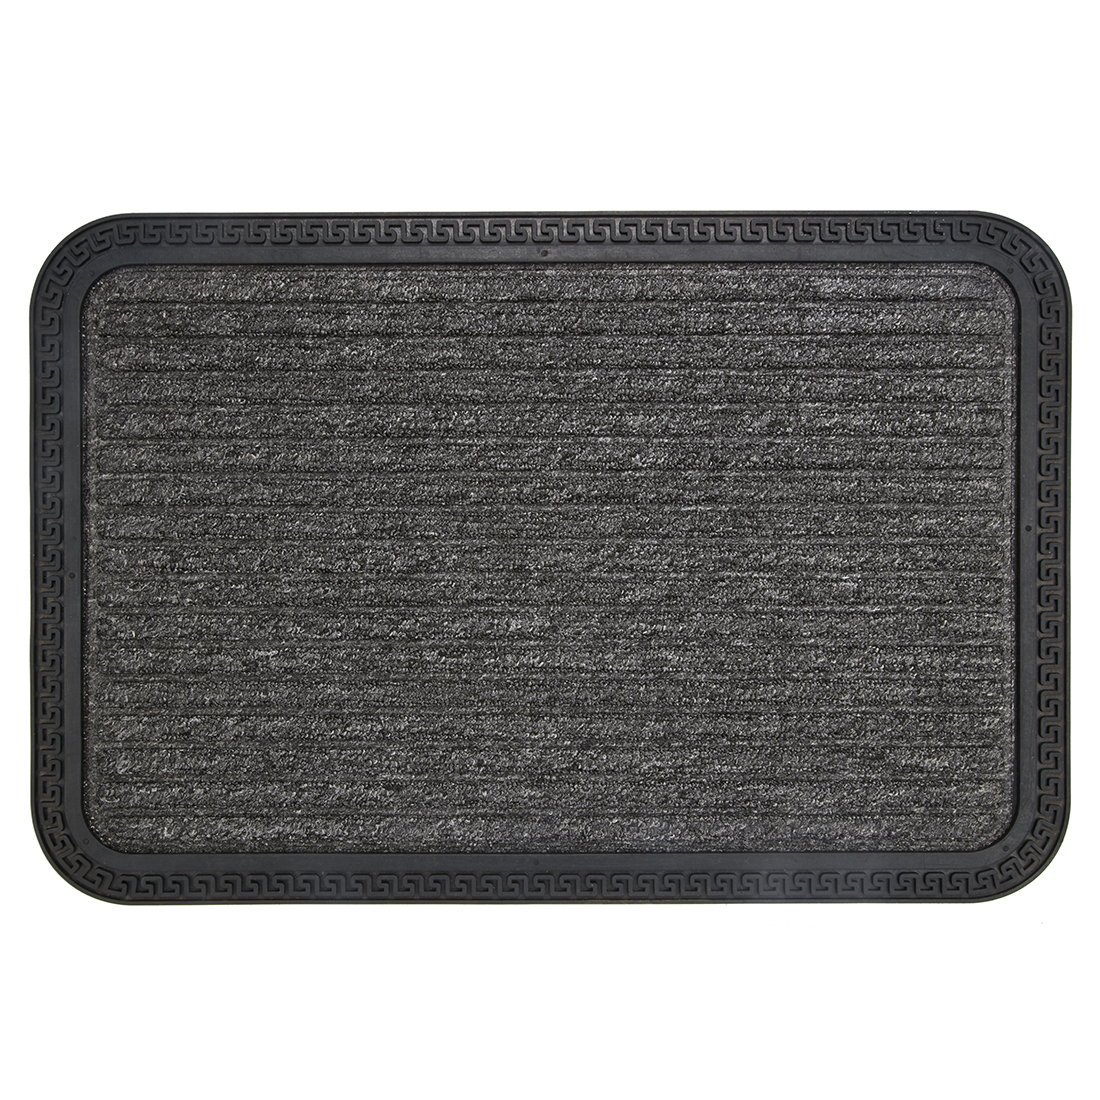 Rubber Backed Mat Rubber Door Mats in Rubber Colour by Living Essence